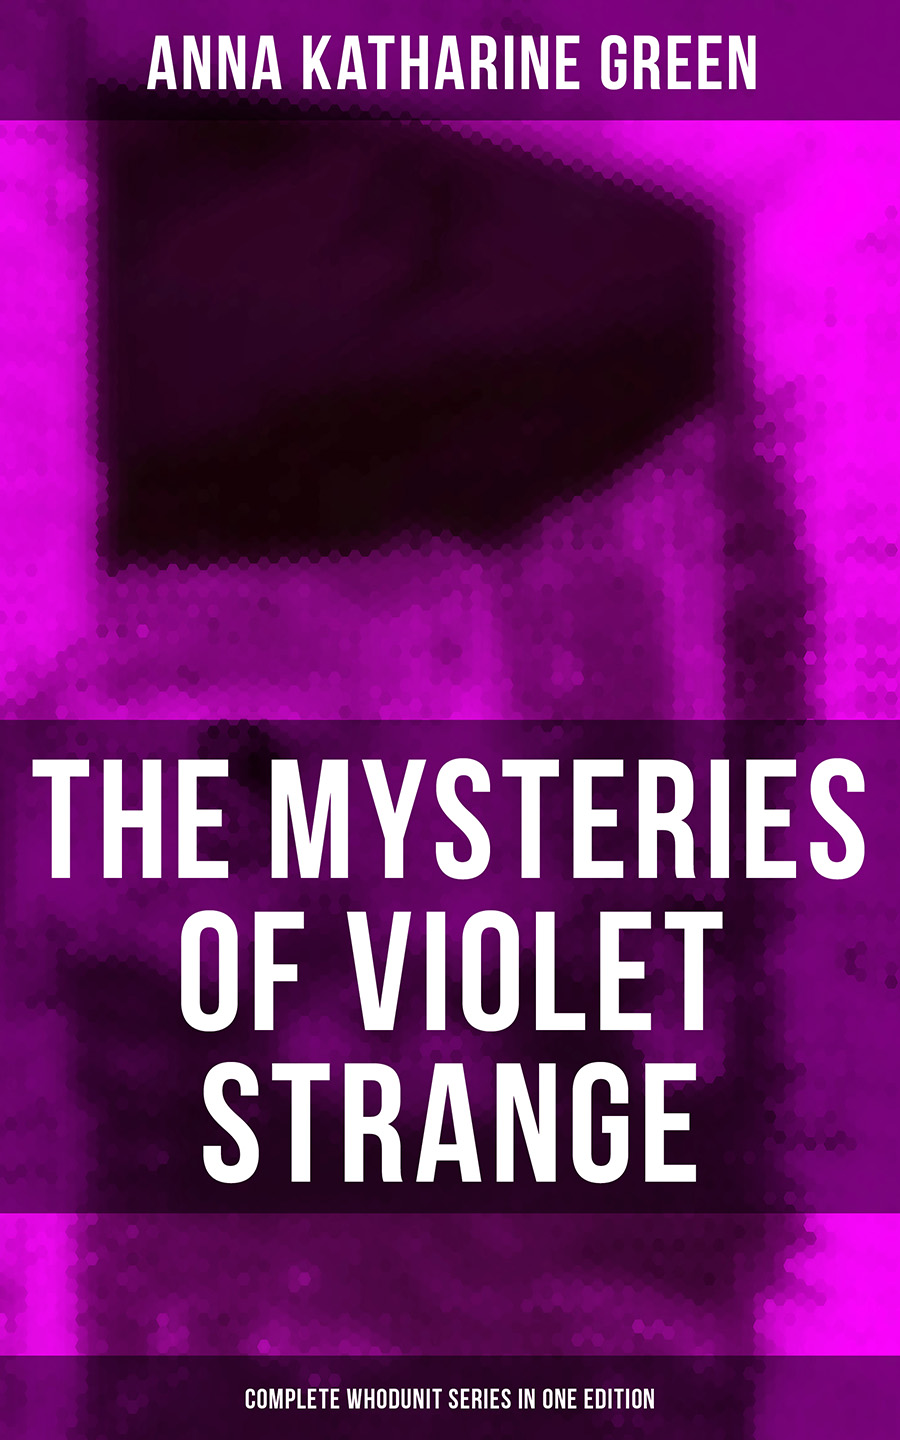 Анна Грин THE MYSTERIES OF VIOLET STRANGE - Complete Whodunit Series in One Edition anna katharine green the mysteries of violet strange complete whodunit series in one edition